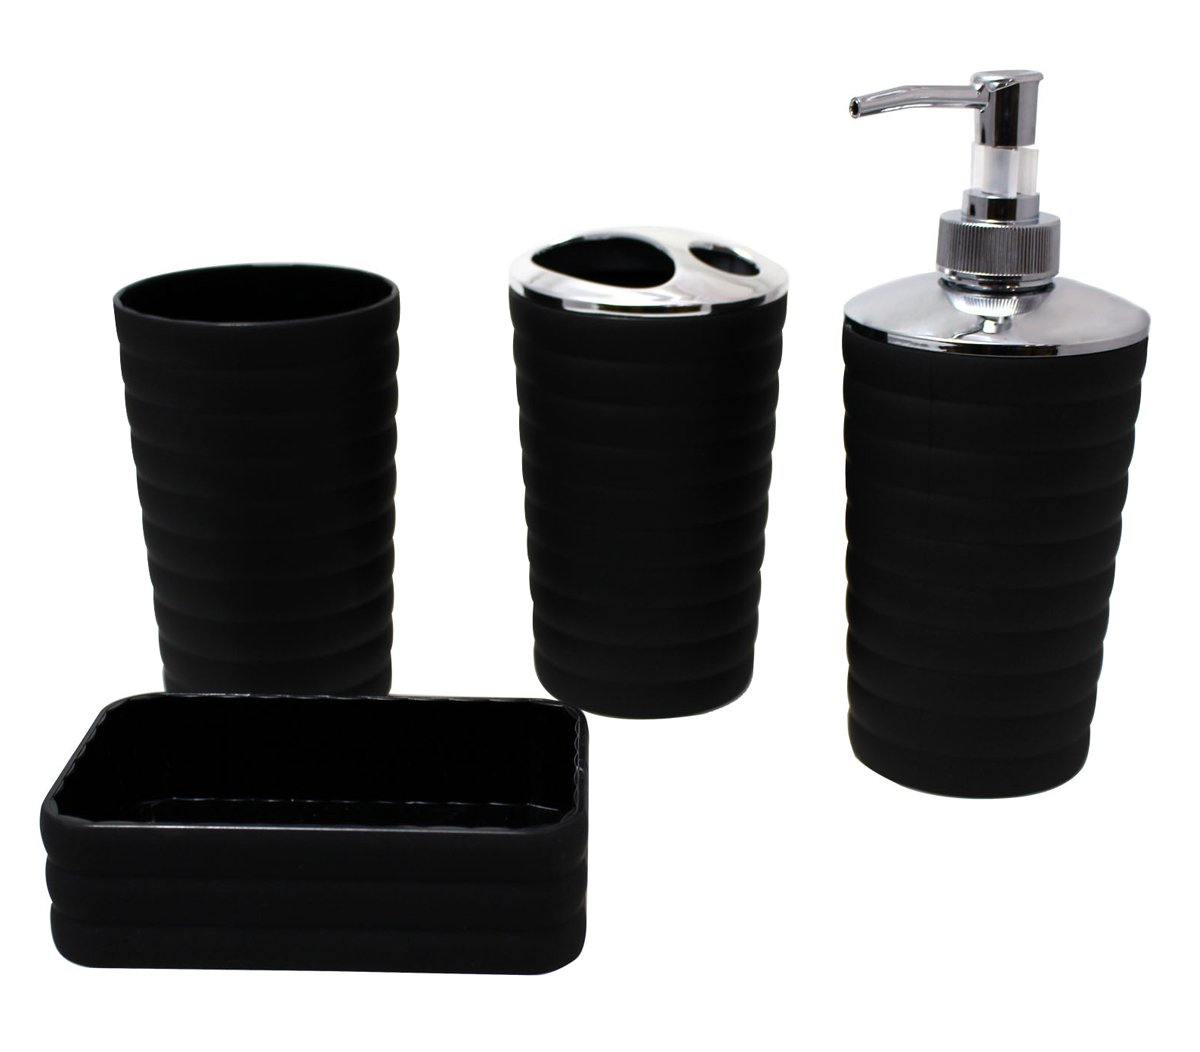 JustNile Minimalist 4-Piece Durable Plastic Black Bathroom Accessory Set, Soap Dish/Soap Dispenser/Tumbler/Toothbrush Holder Included - Four pieces set includes soap dispenser, soap dish, toothbrush holder and cup Simple, stylish, elegant and it's easy to clean Made of Plastic With Rubber finished - bathroom-accessory-sets, bathroom-accessories, bathroom - 51yBK8ZvfSL -